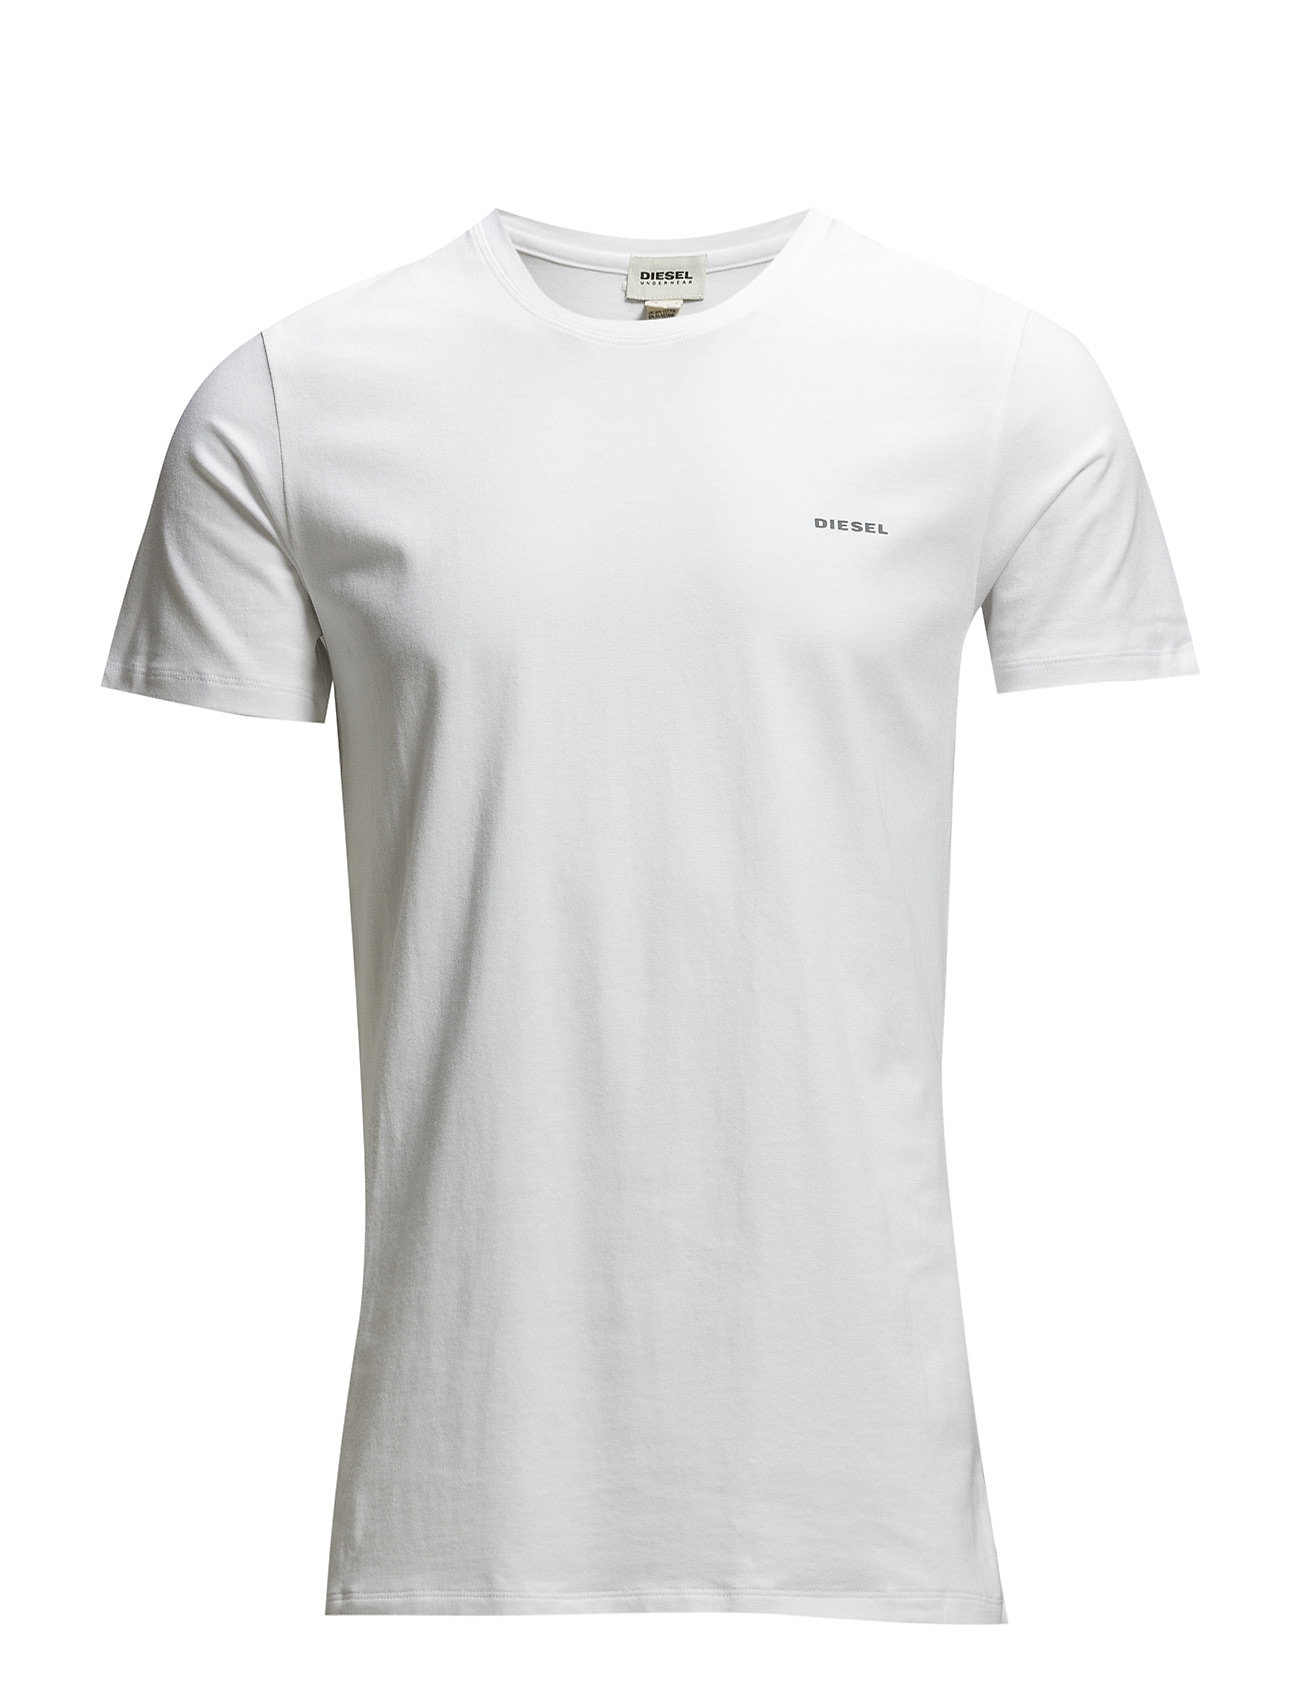 Diesel Men UMTEE-RANDAL T-SHIRT - BRIGHT WHITE